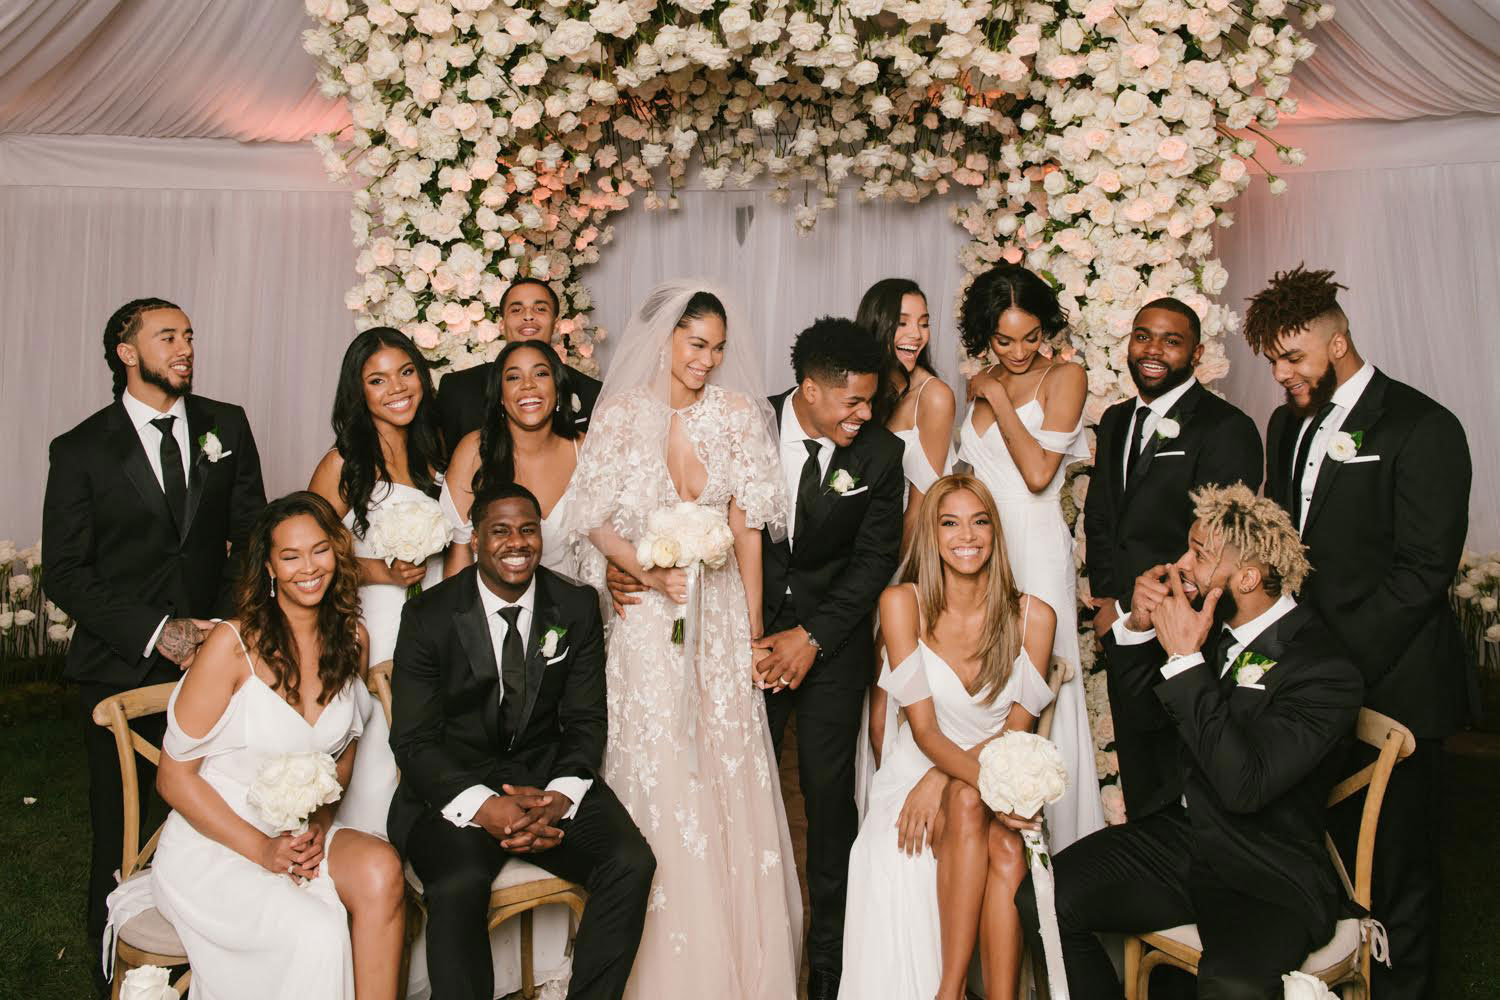 CHANEL IMAN GOT MARRIED TO STERLING SHEPARD AND HER DRESS IS BREATHTAKING